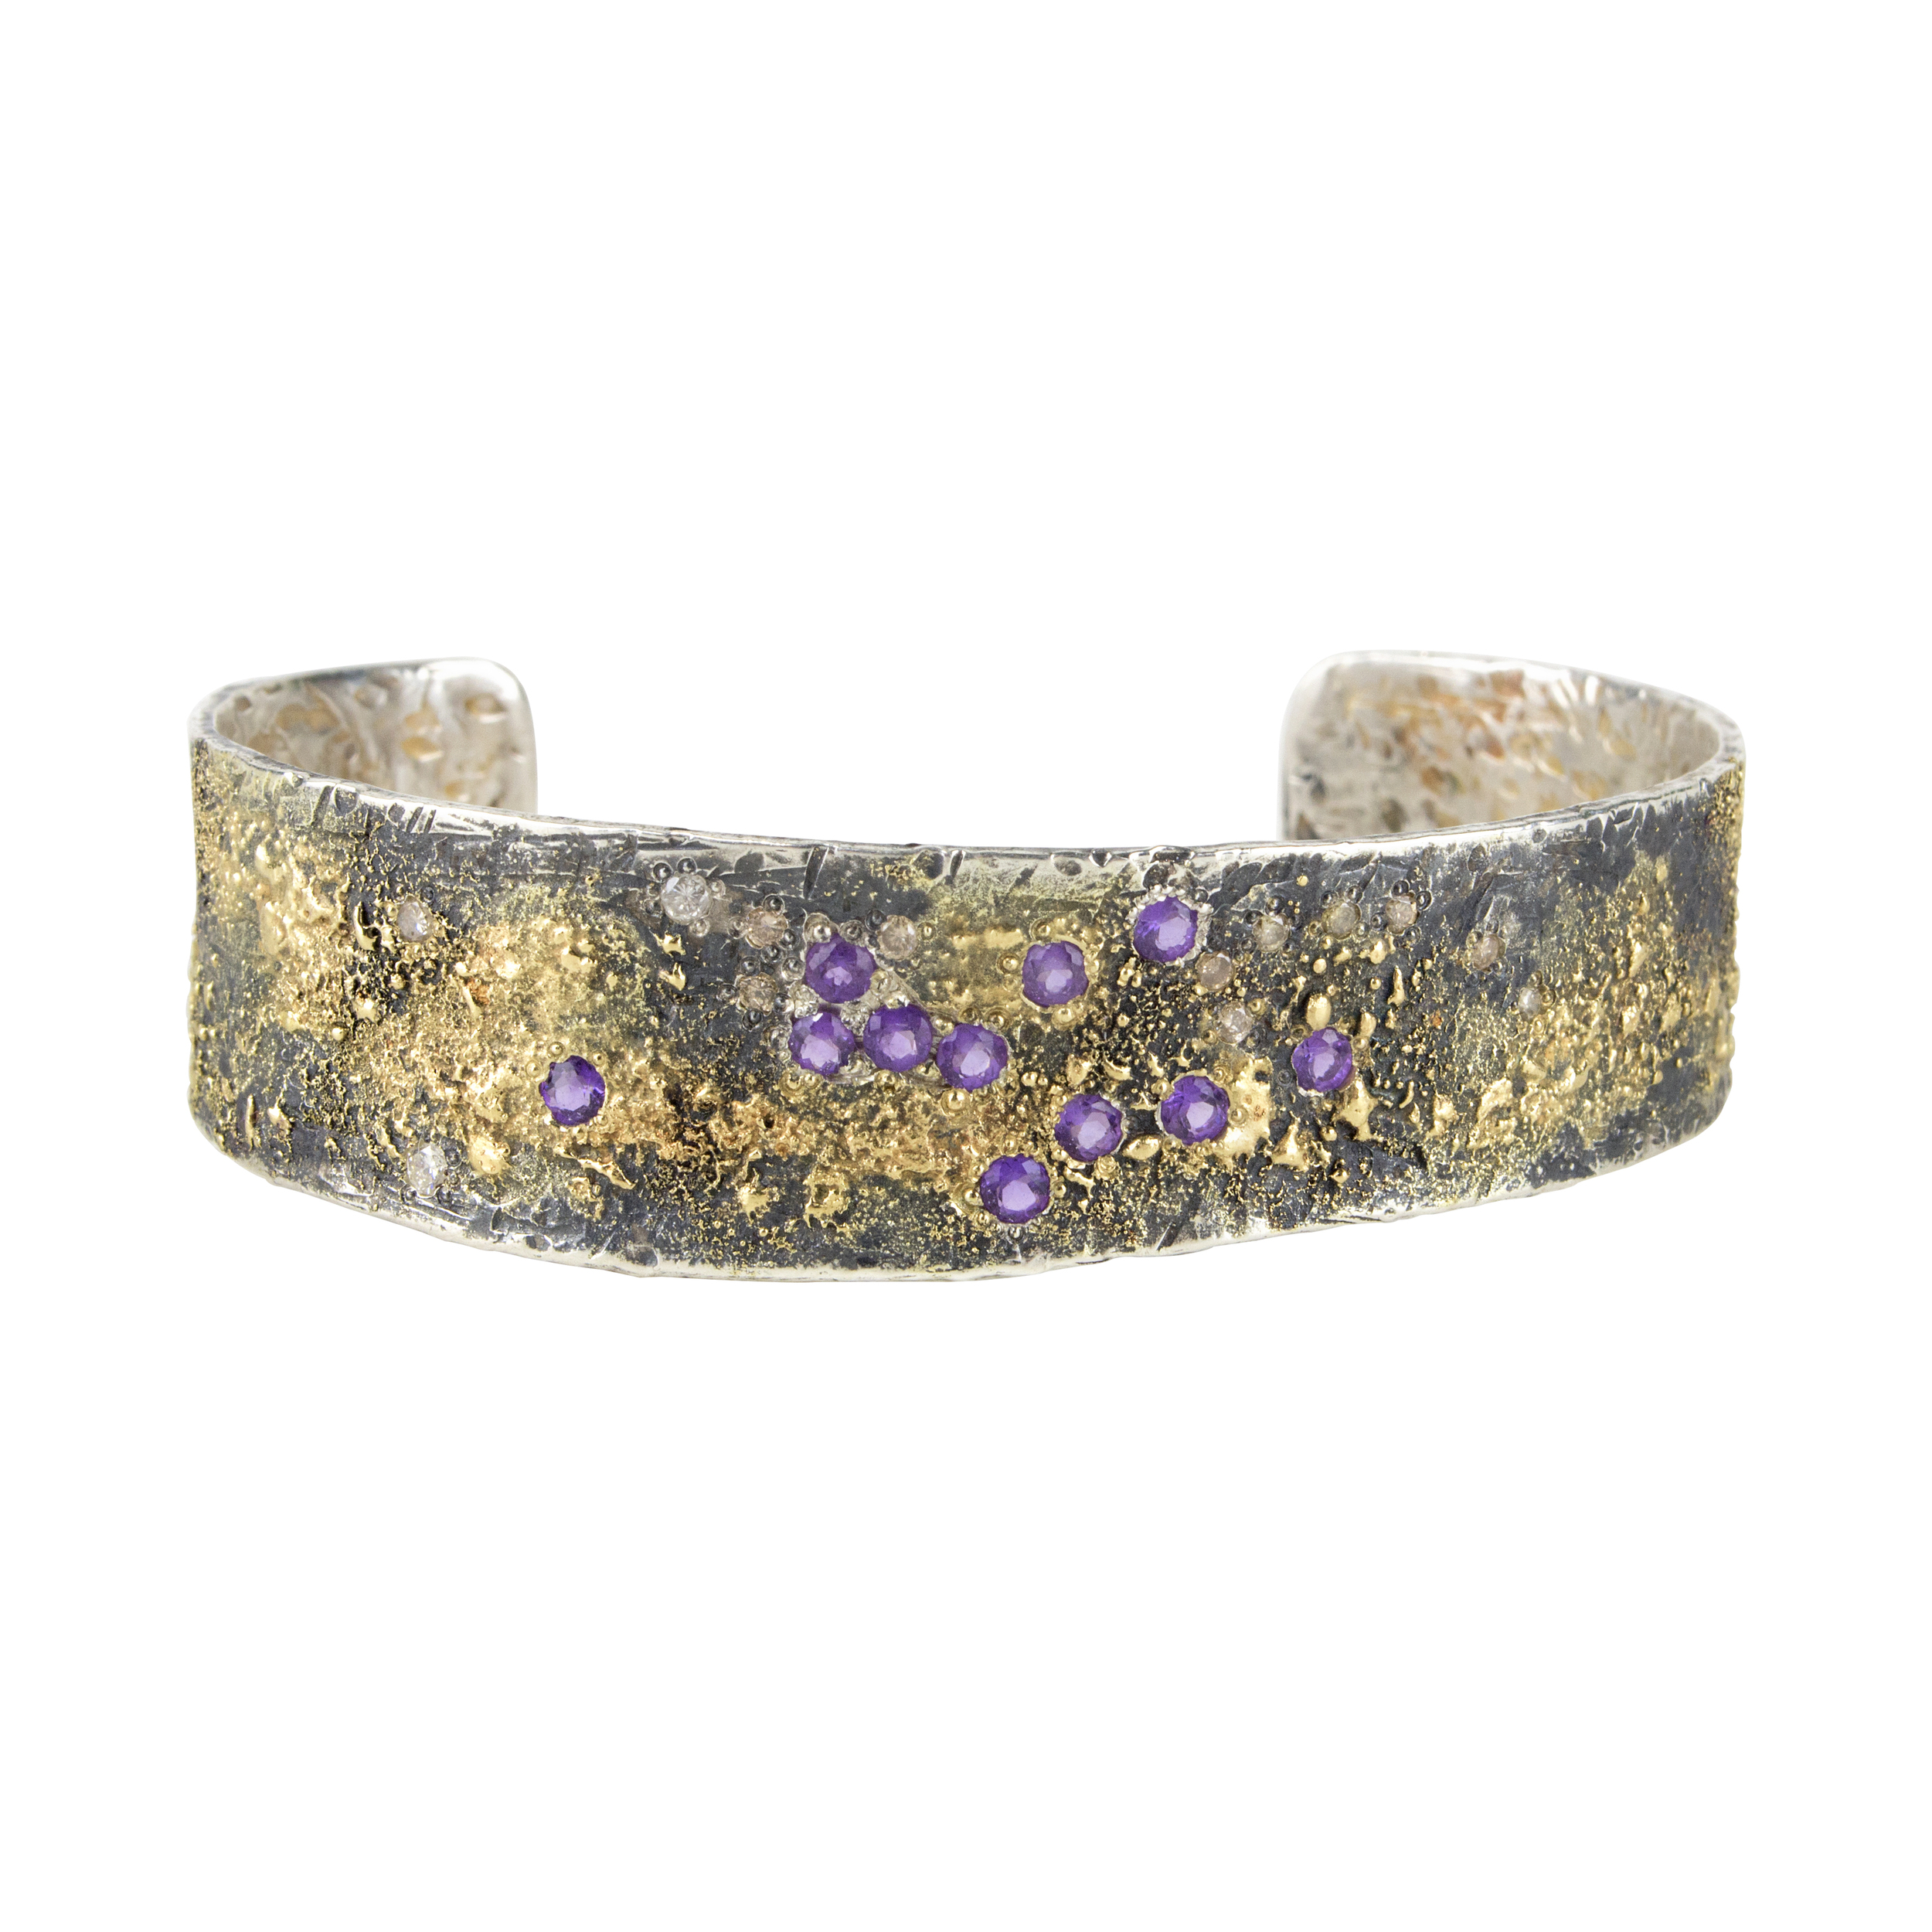 Fusion Concepts 18k Gold and Oxidized Silver Cuff with  Amethysts and Diamonds